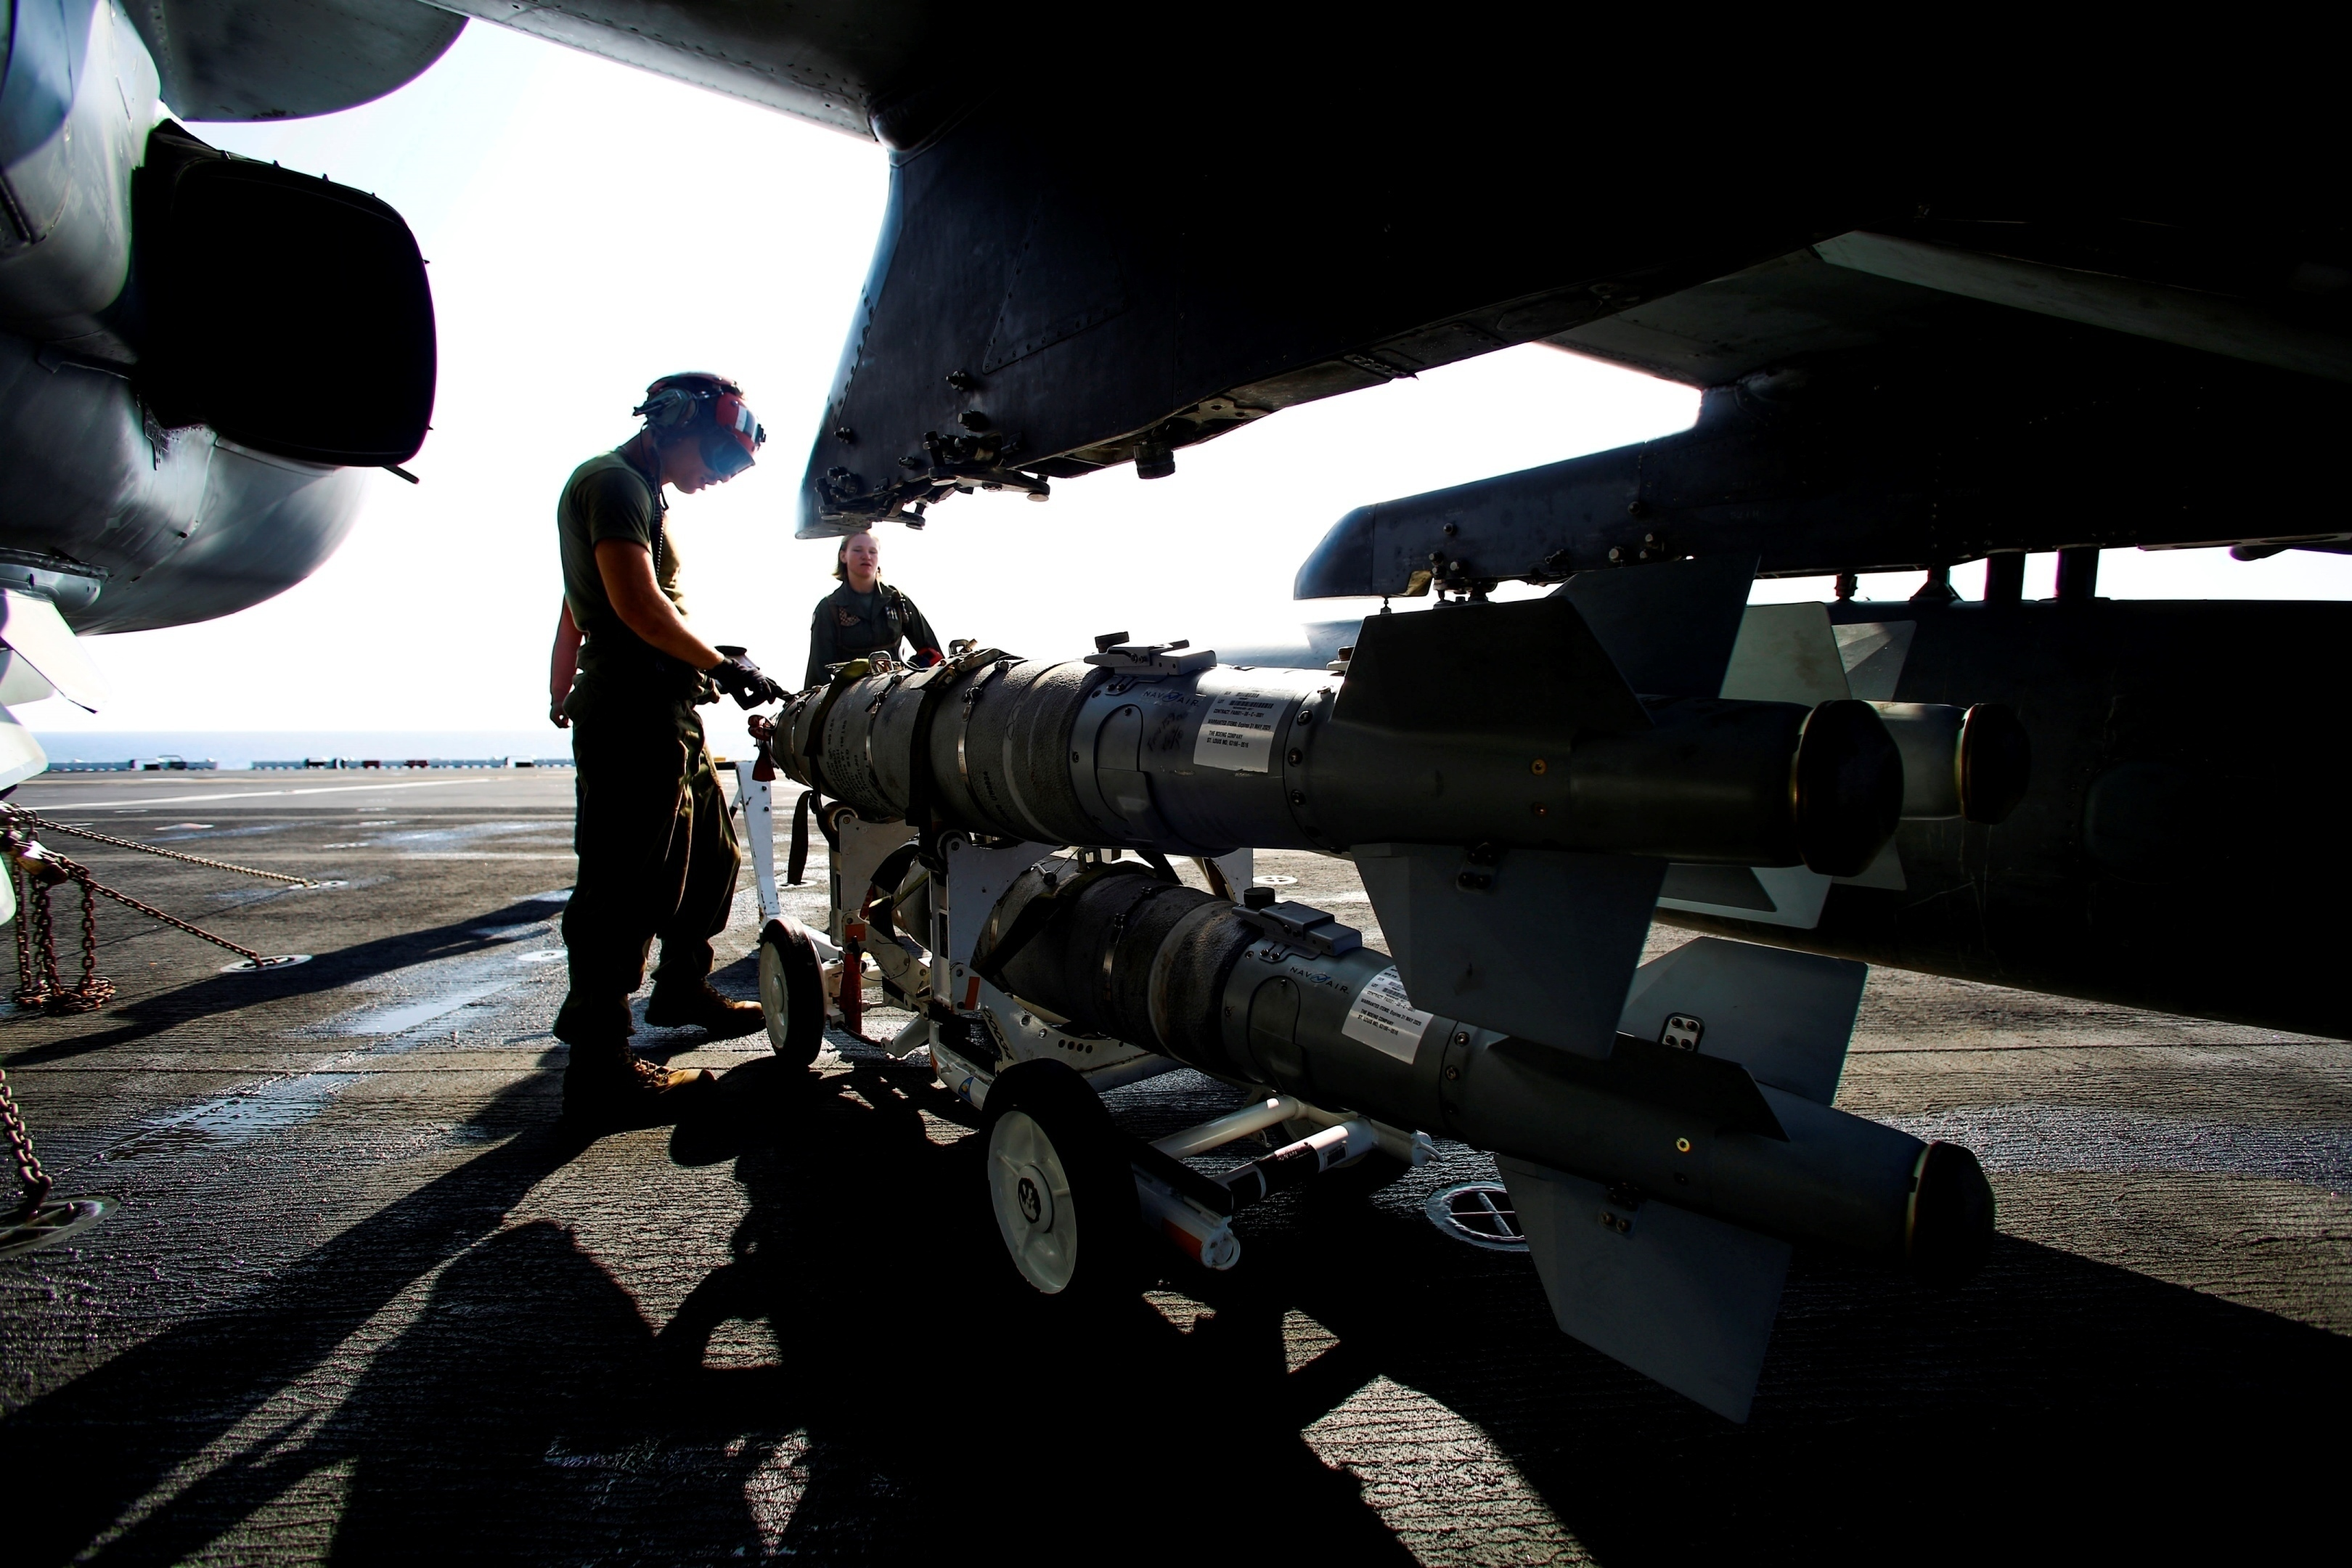 Marines from 22nd US Marine Expeditionary Unit load ordnance on an AV-8B Harrier II on the amphibious assault ship USS Wasp on Aug. 2nd 2016 (USMC/ Cpl. Ryan G. Coleman)